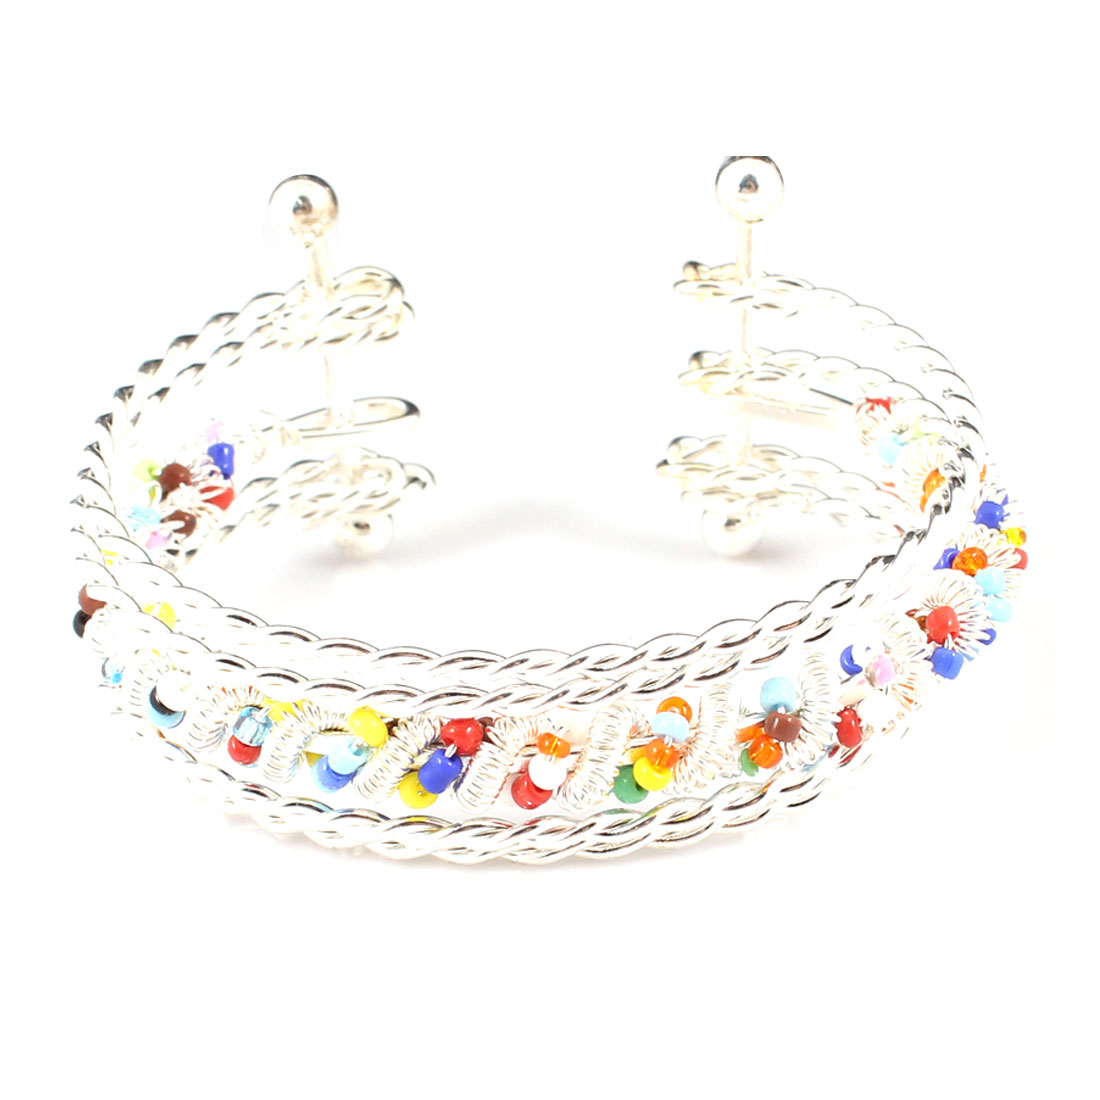 Multilayer Silver Tone Twisted Metal Wrist Bracelet w Colorful linked Beads